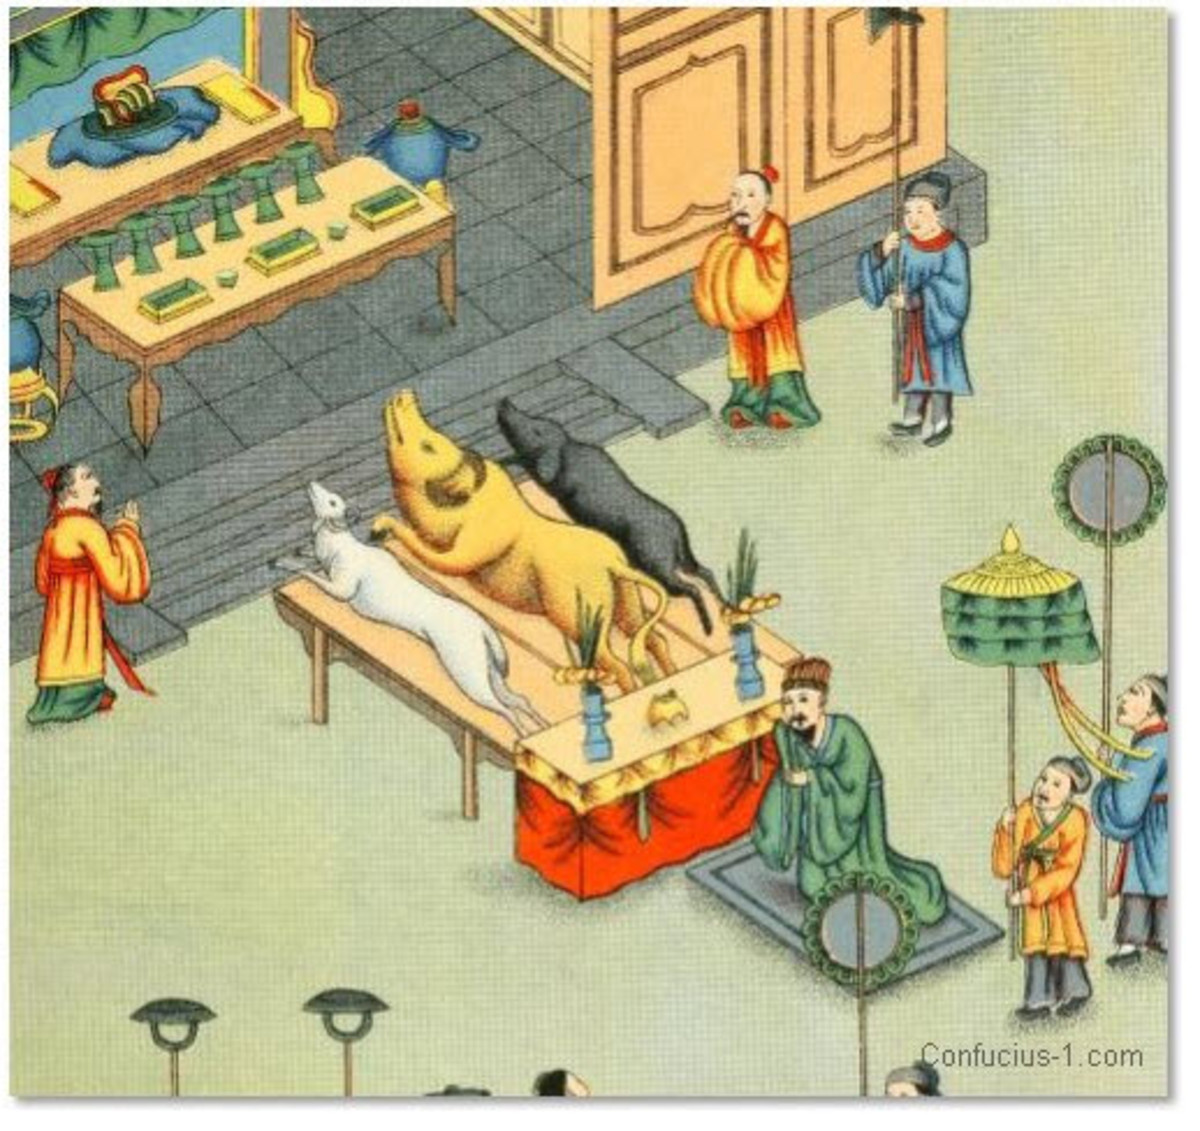 Sacrifices Are Offered to Confucius After His Death